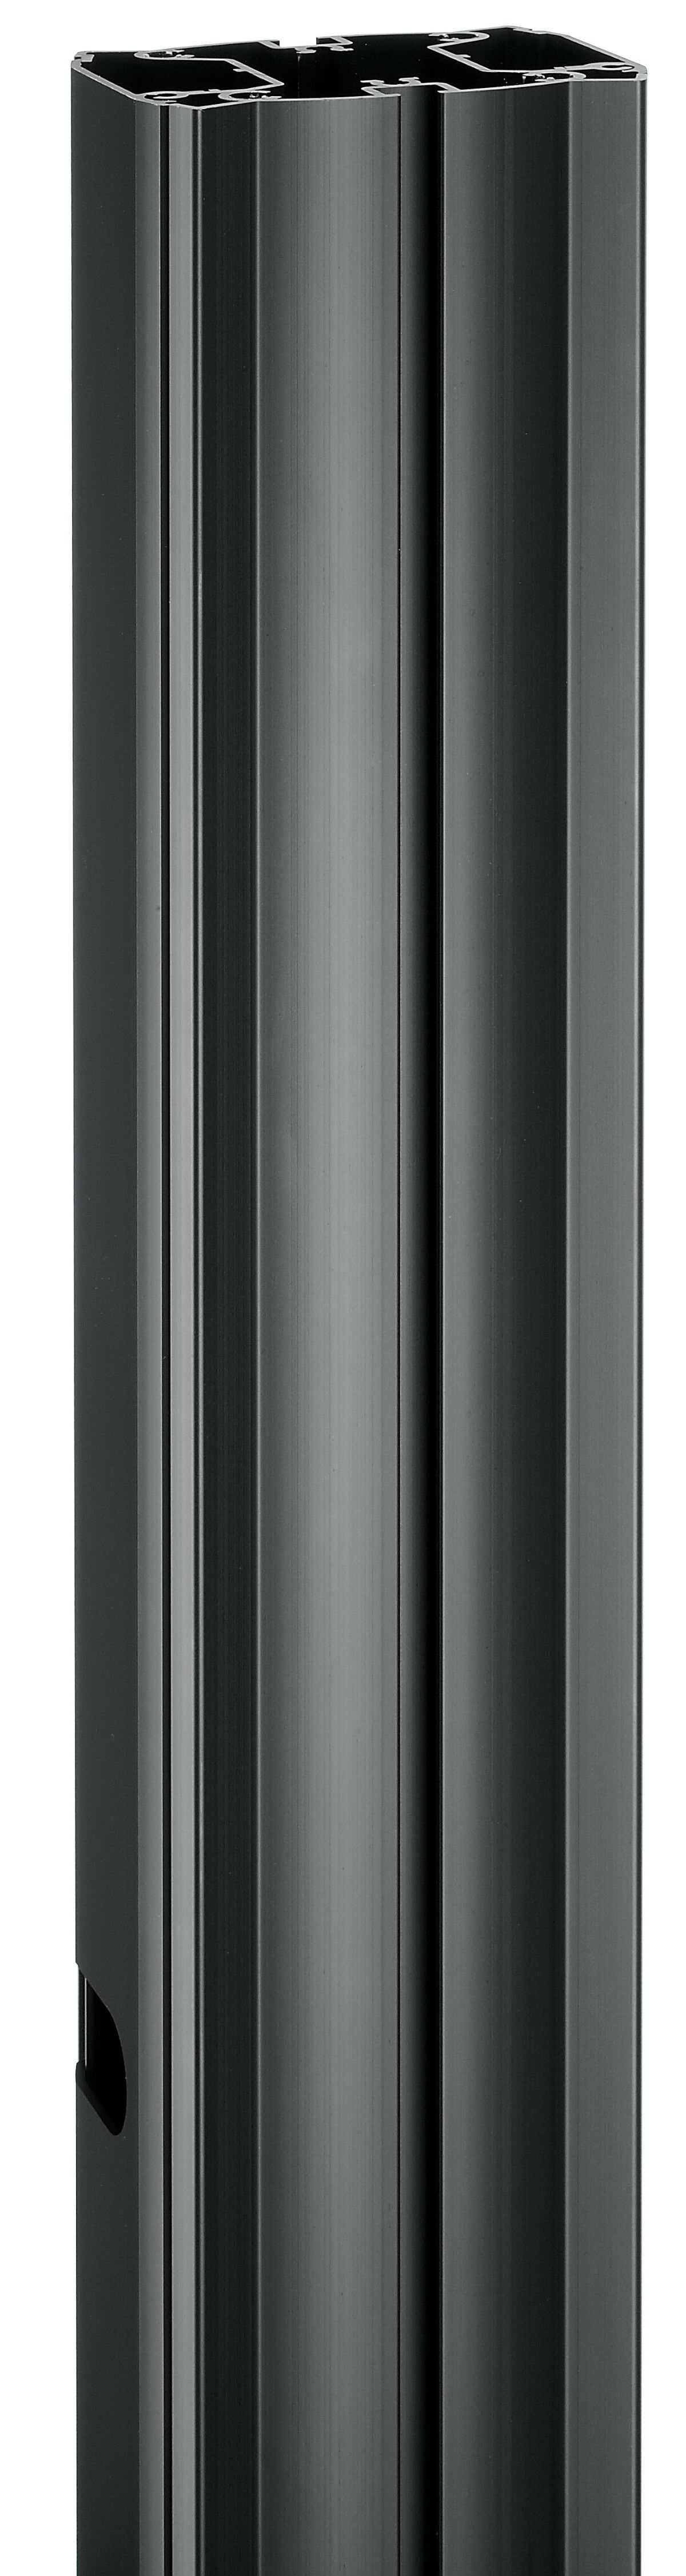 Vogel's PUC 2720 Tube, noir - Product